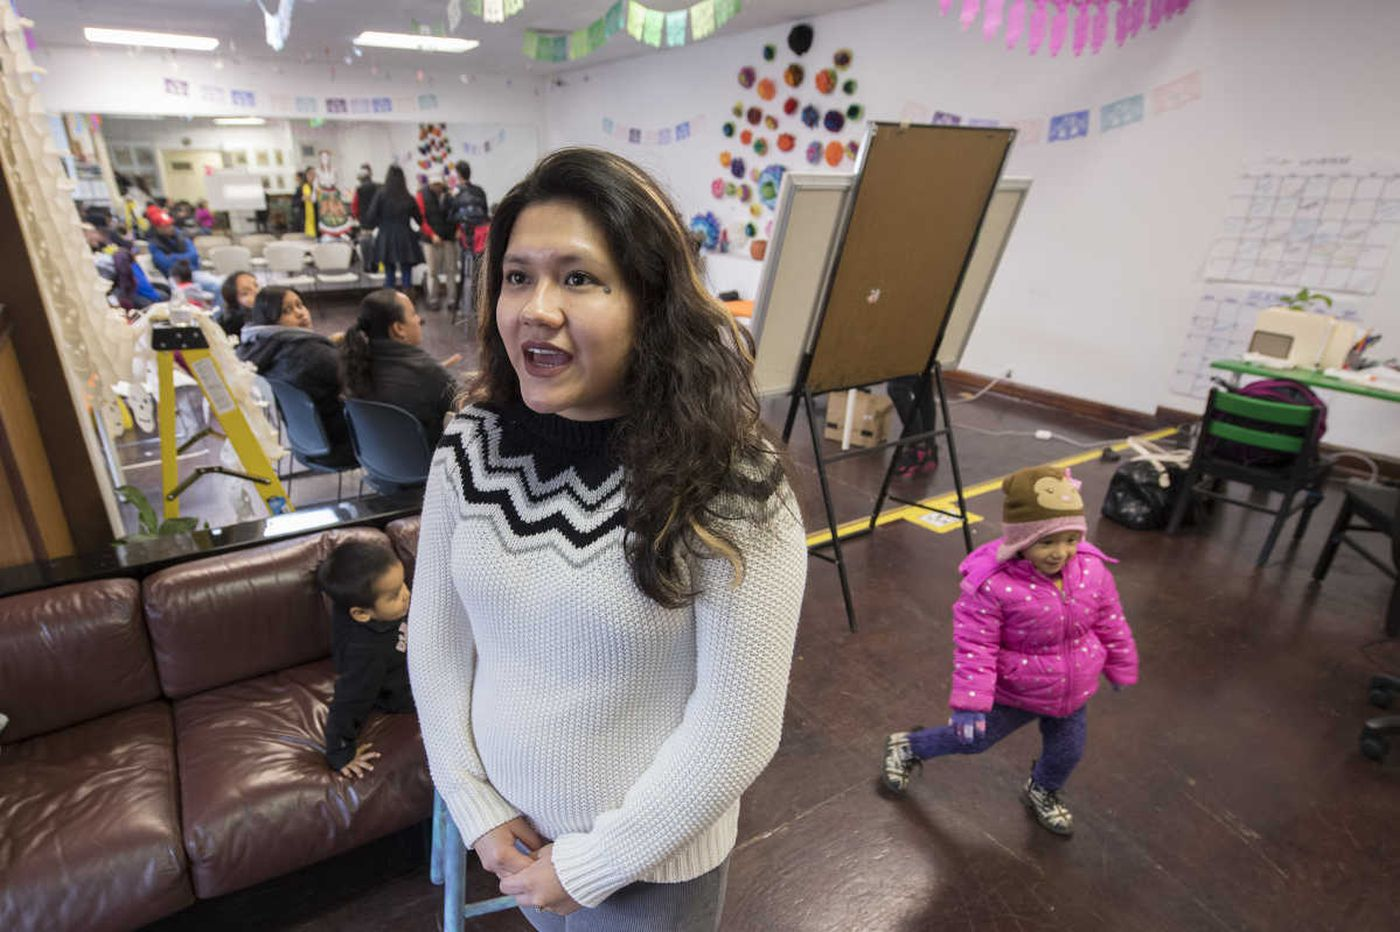 Fear and loathing sweep immigrant communities in wake of Trump win